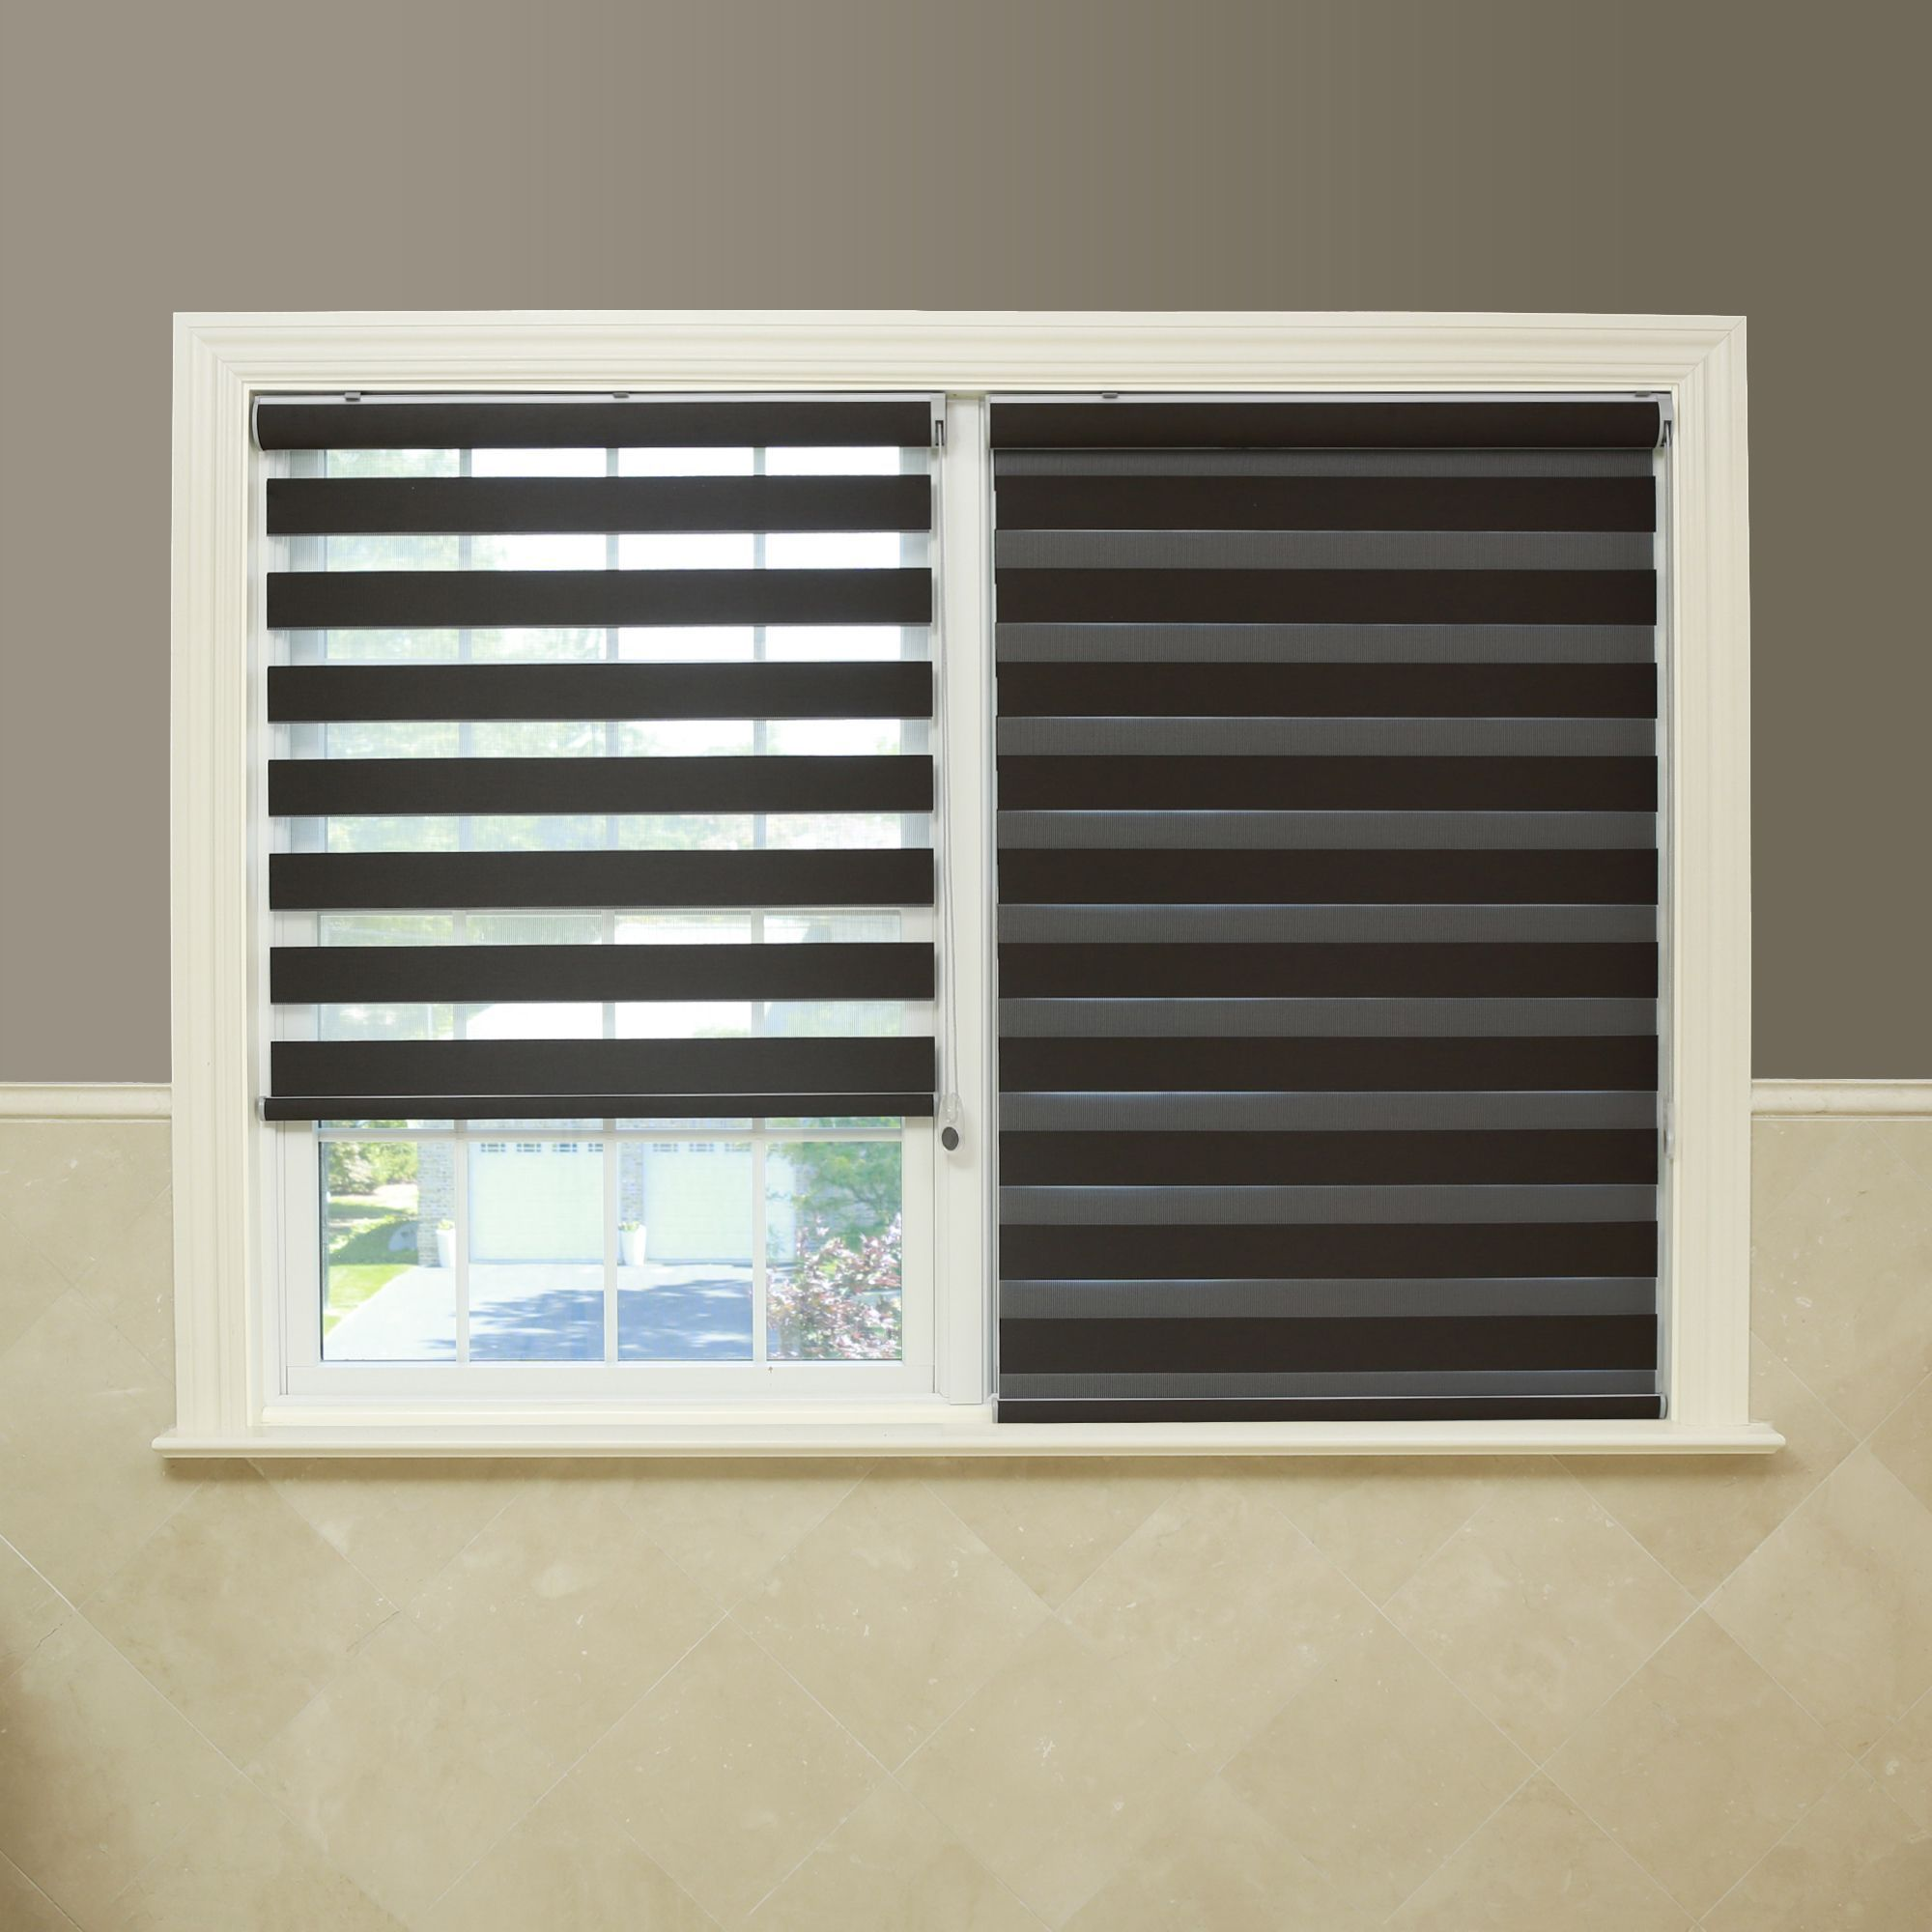 Creative designs of basement window covers for your diy